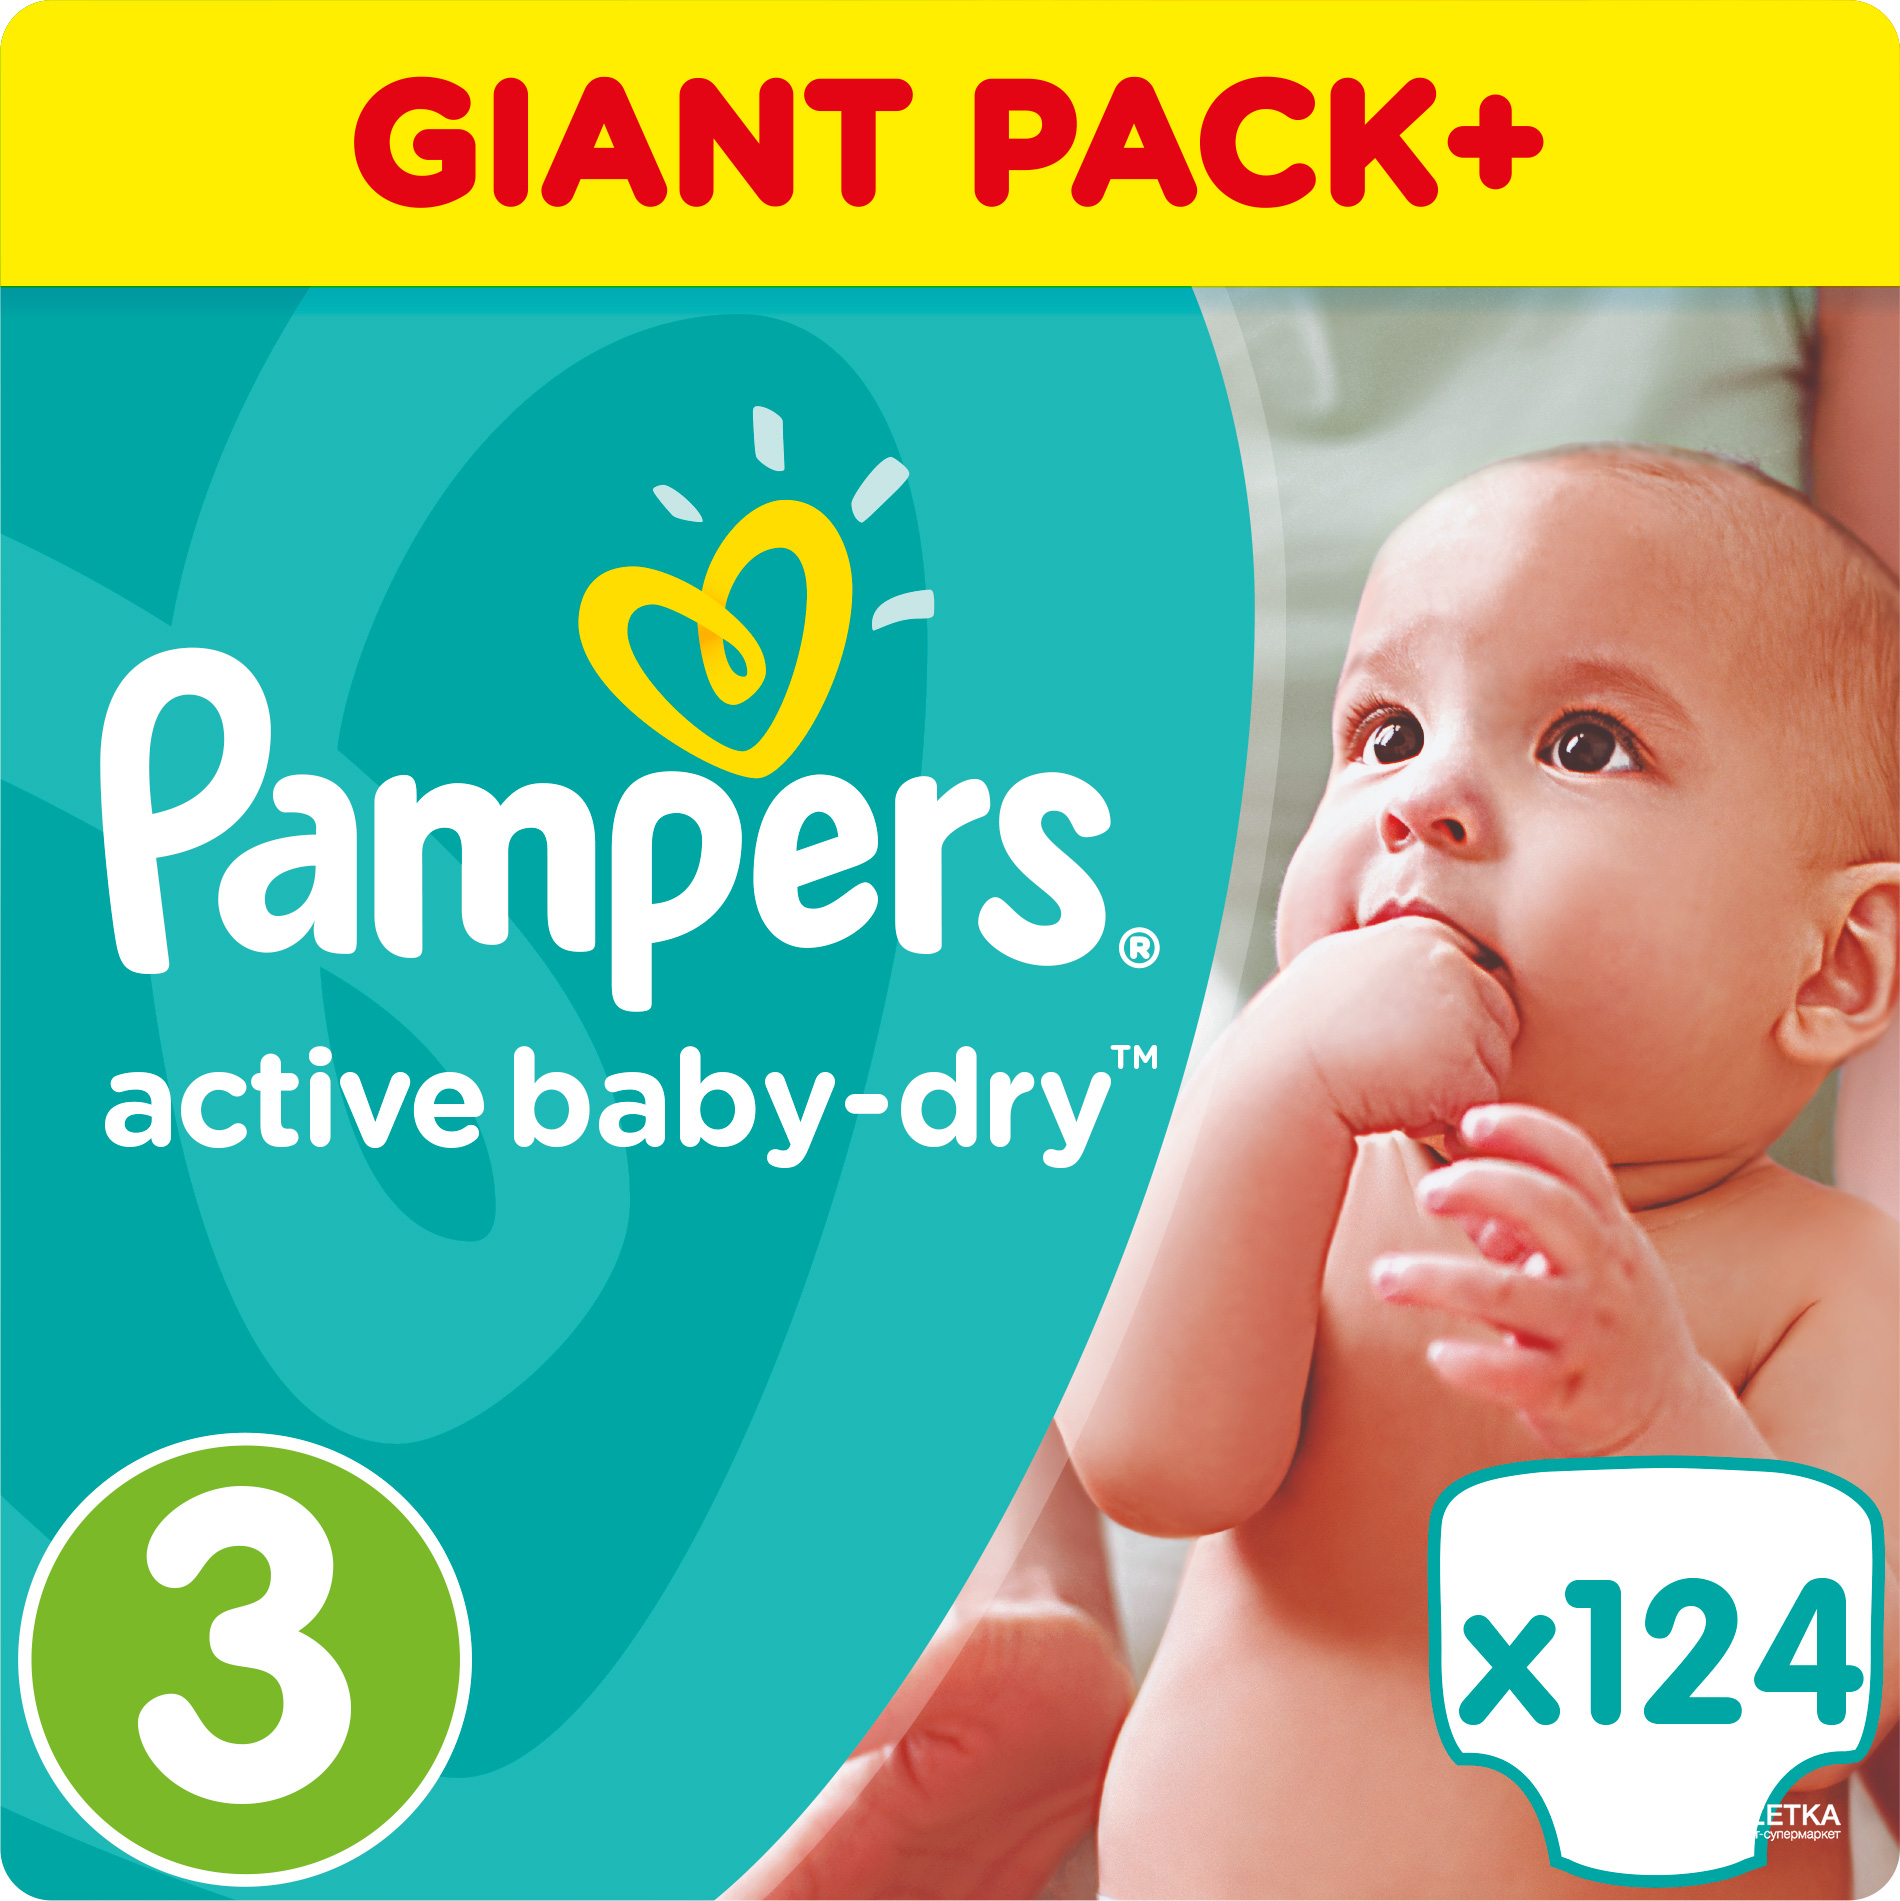 e35d97d630c3 Подгузники Pampers Active Baby-Dry Размер 3 (Midi) 5-9 кг, 124 шт (8001090